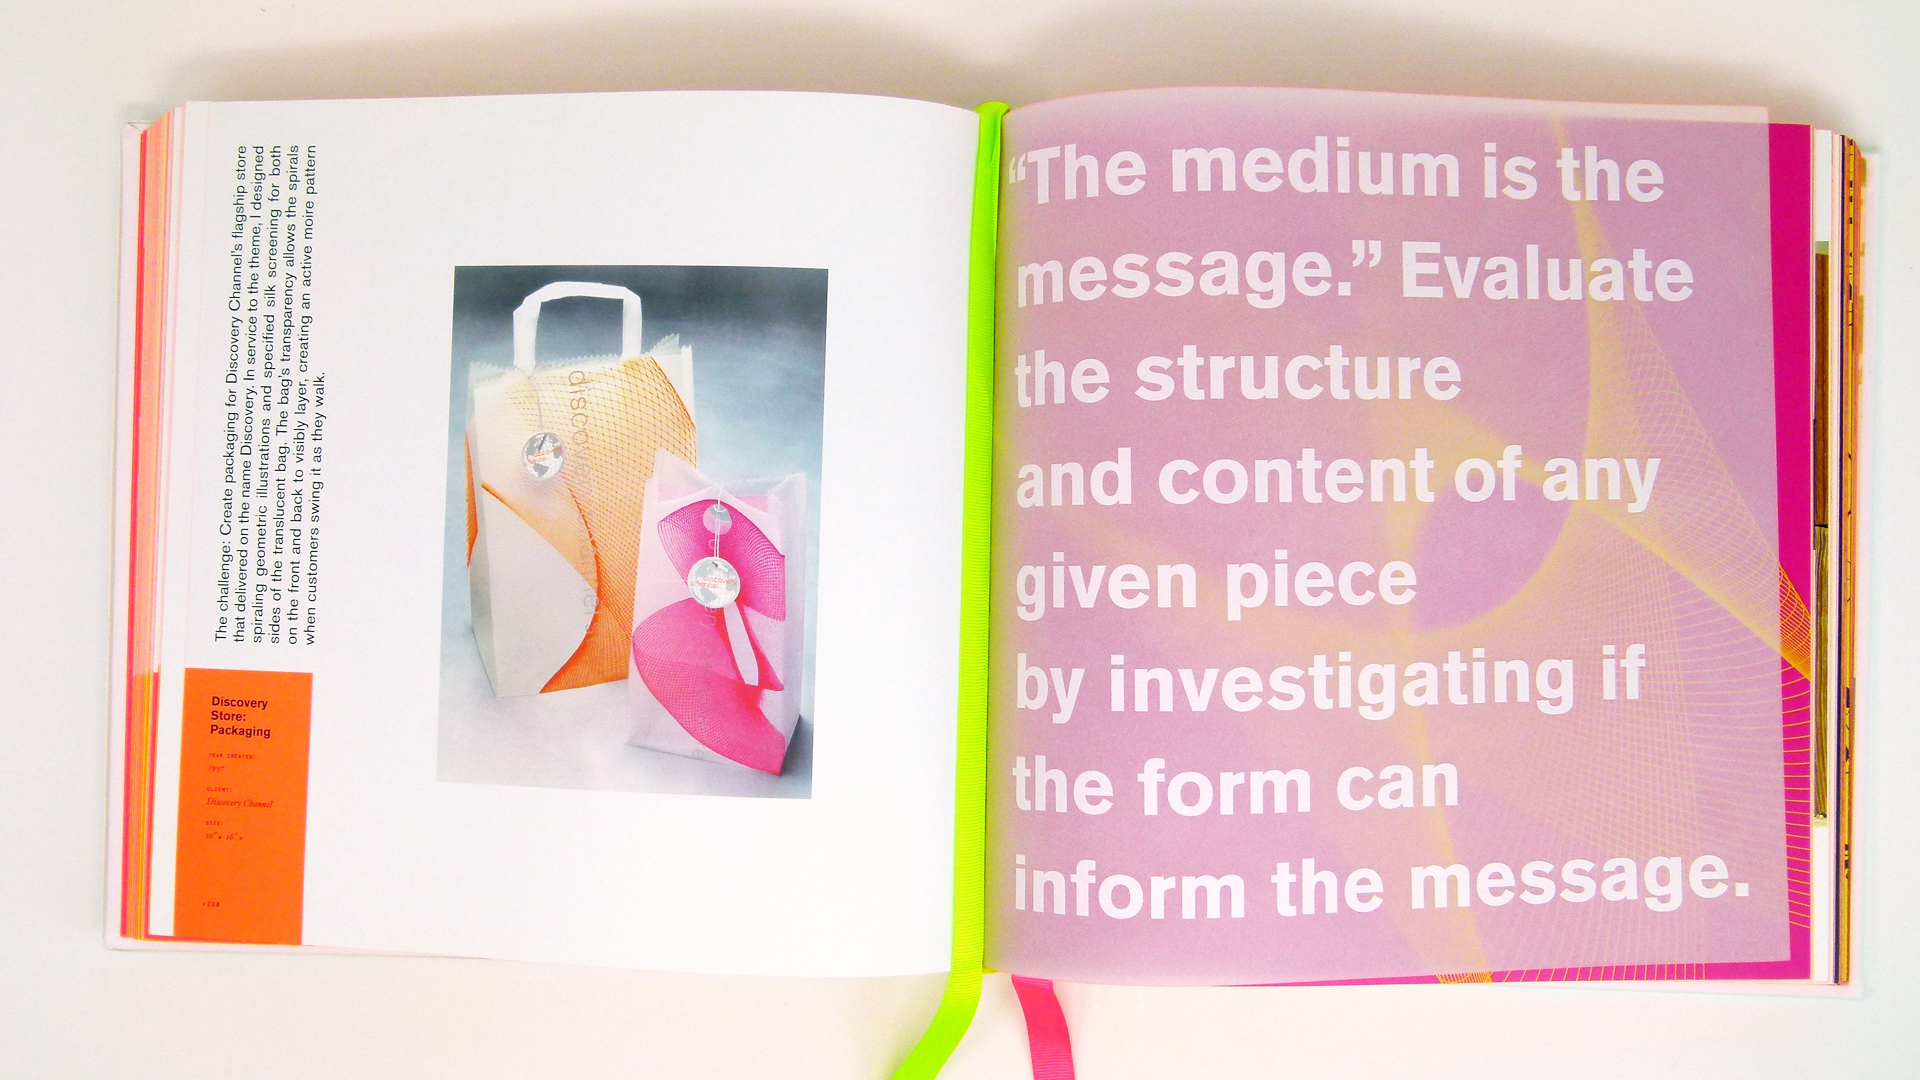 Gripping Book Design - 'Morla : Design' Book - PaperSpecs